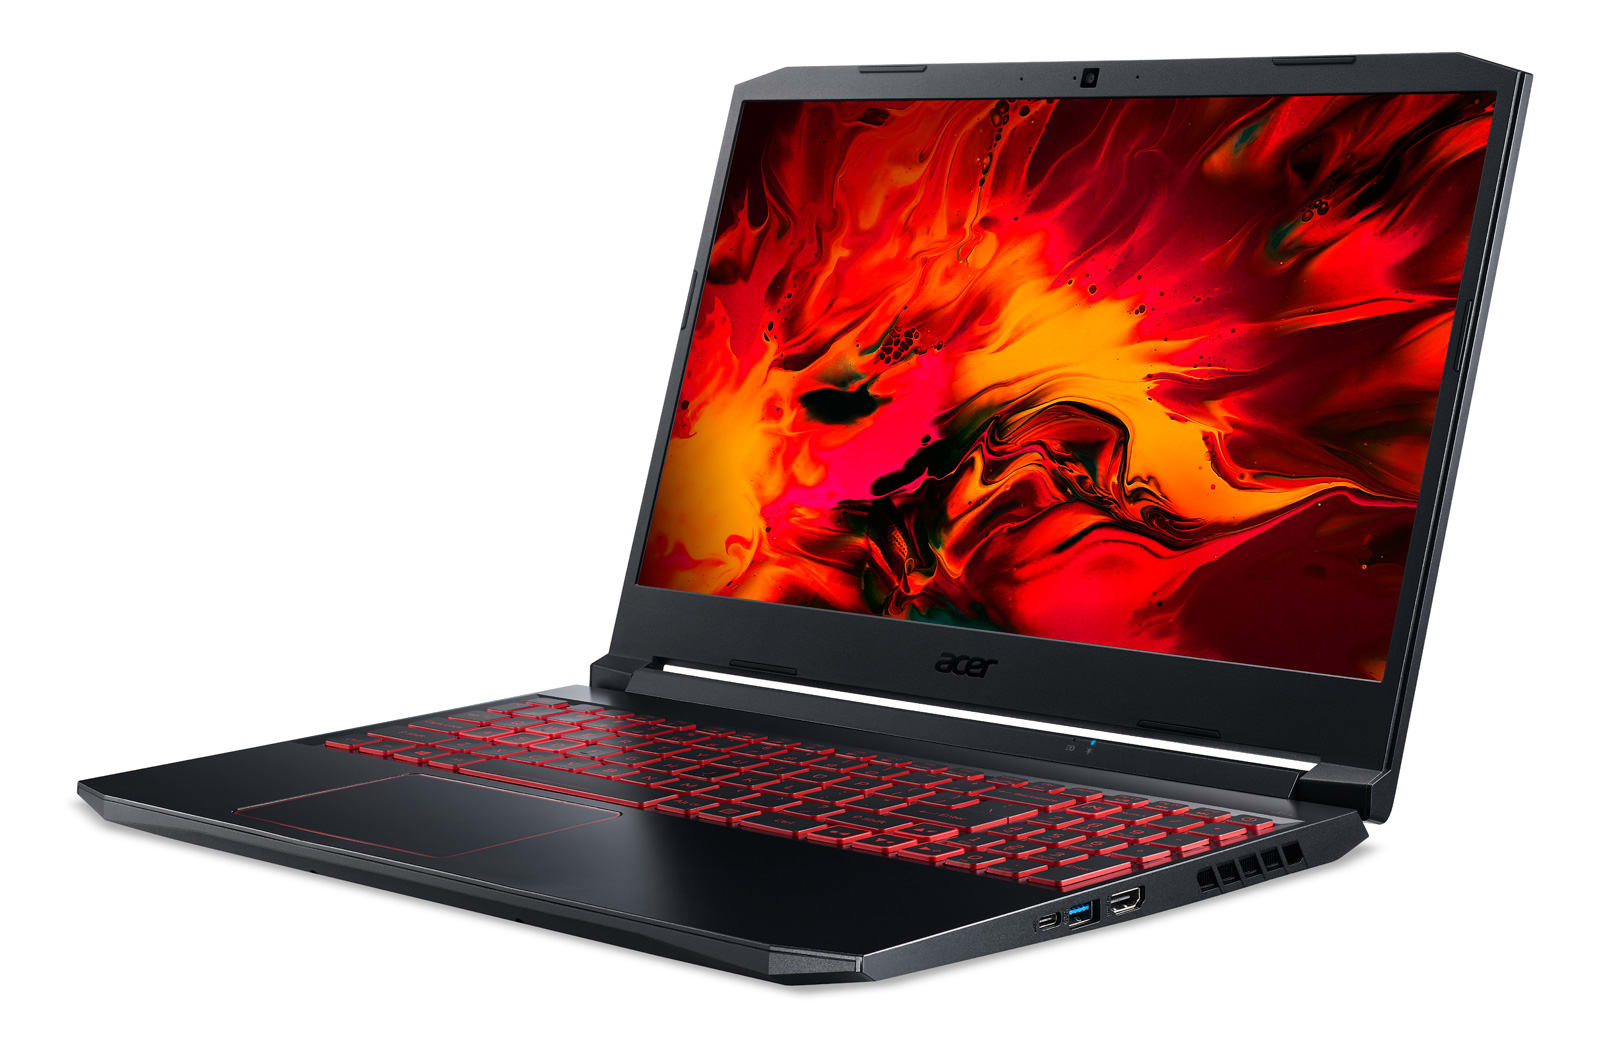 Acer Nitro 5 (2020) gaming laptop